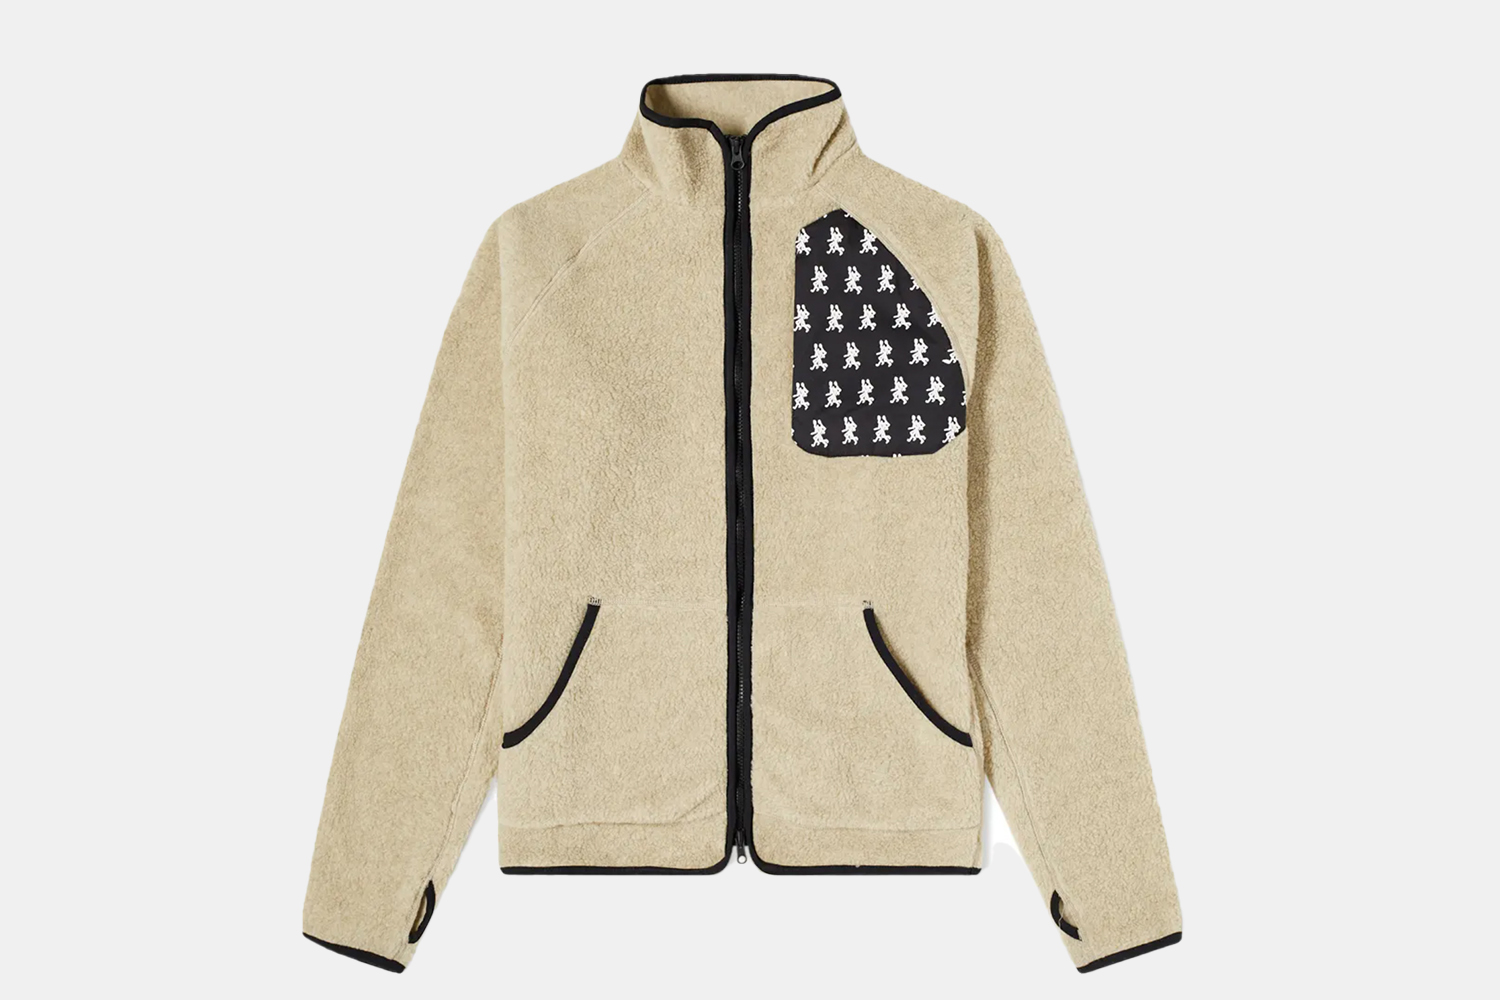 a cream fleece with a patterned pocket.